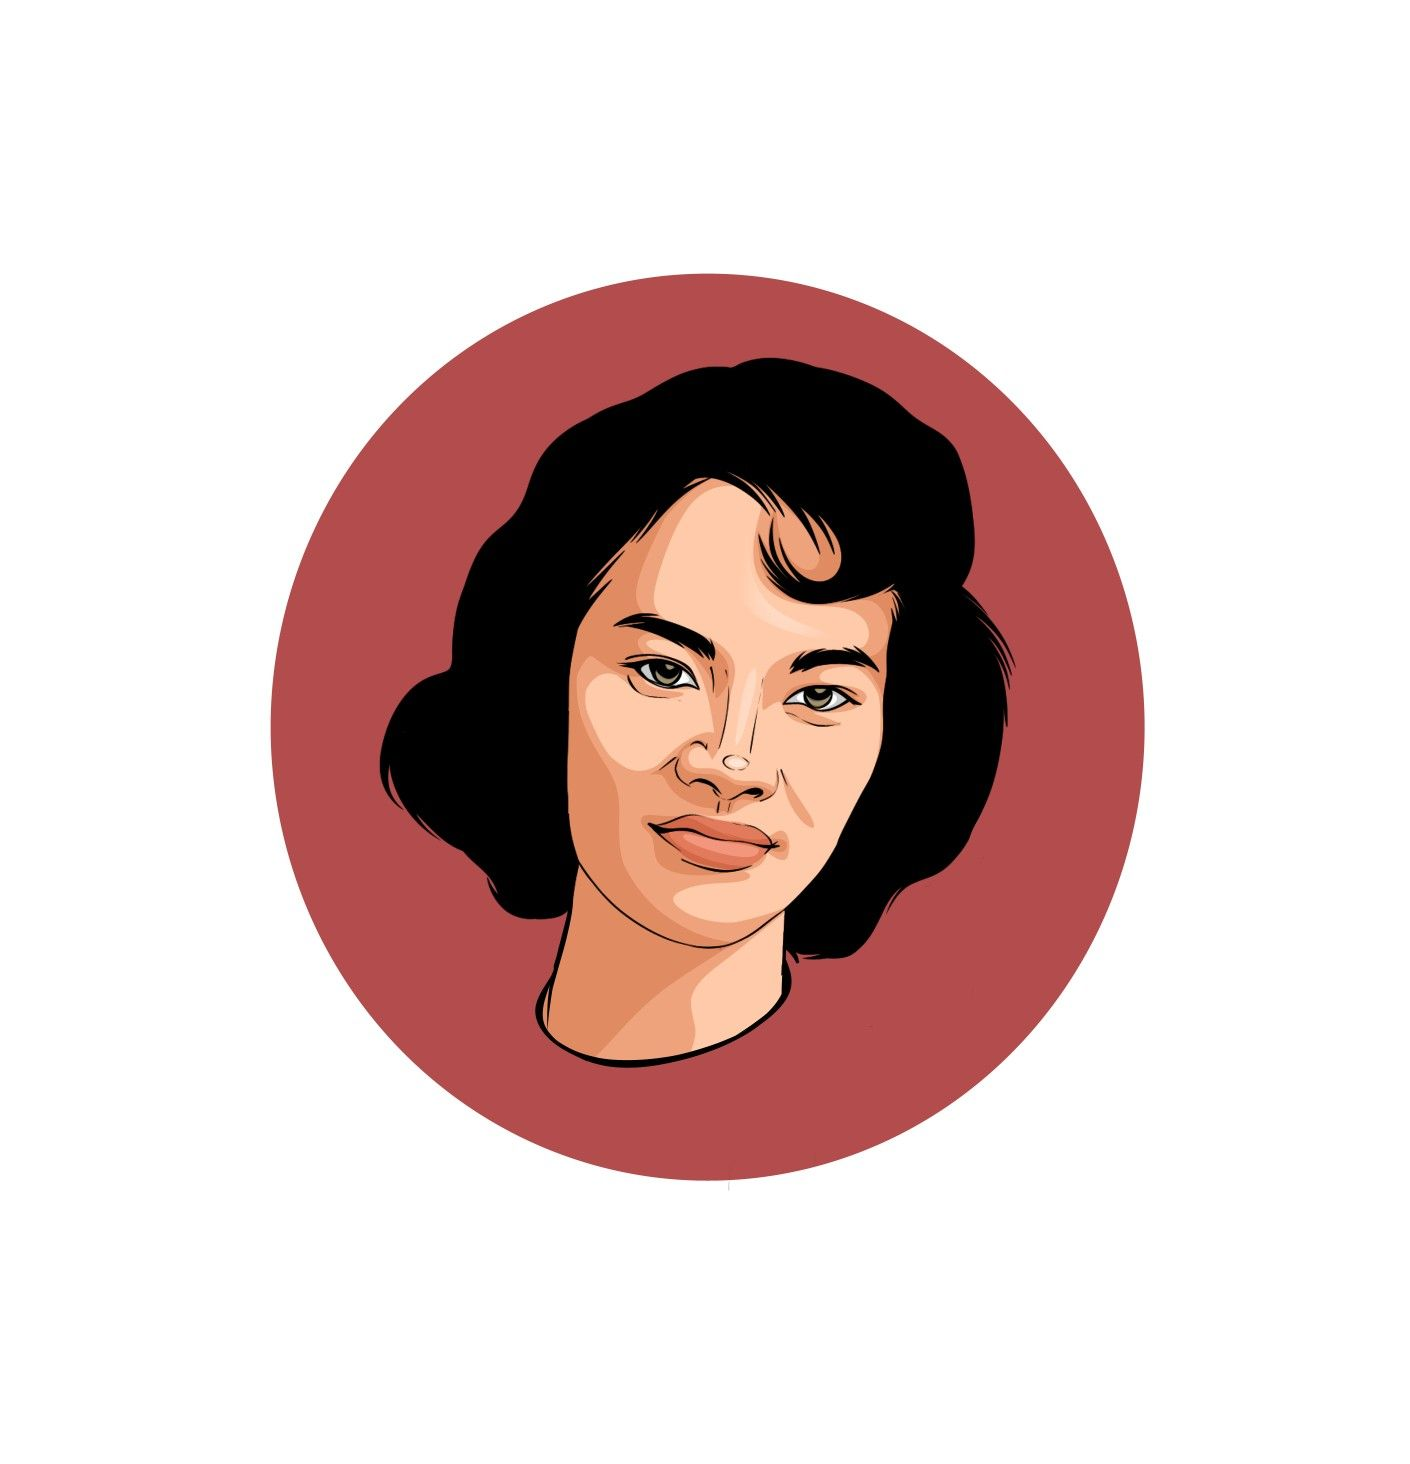 Rapnoid96 I Will Draw Avatar Cartoon Portrait For Your Profil Picture For 5 On Fiverr Com In 2020 Avatar Cartoon Vector Portrait Portrait Illustration